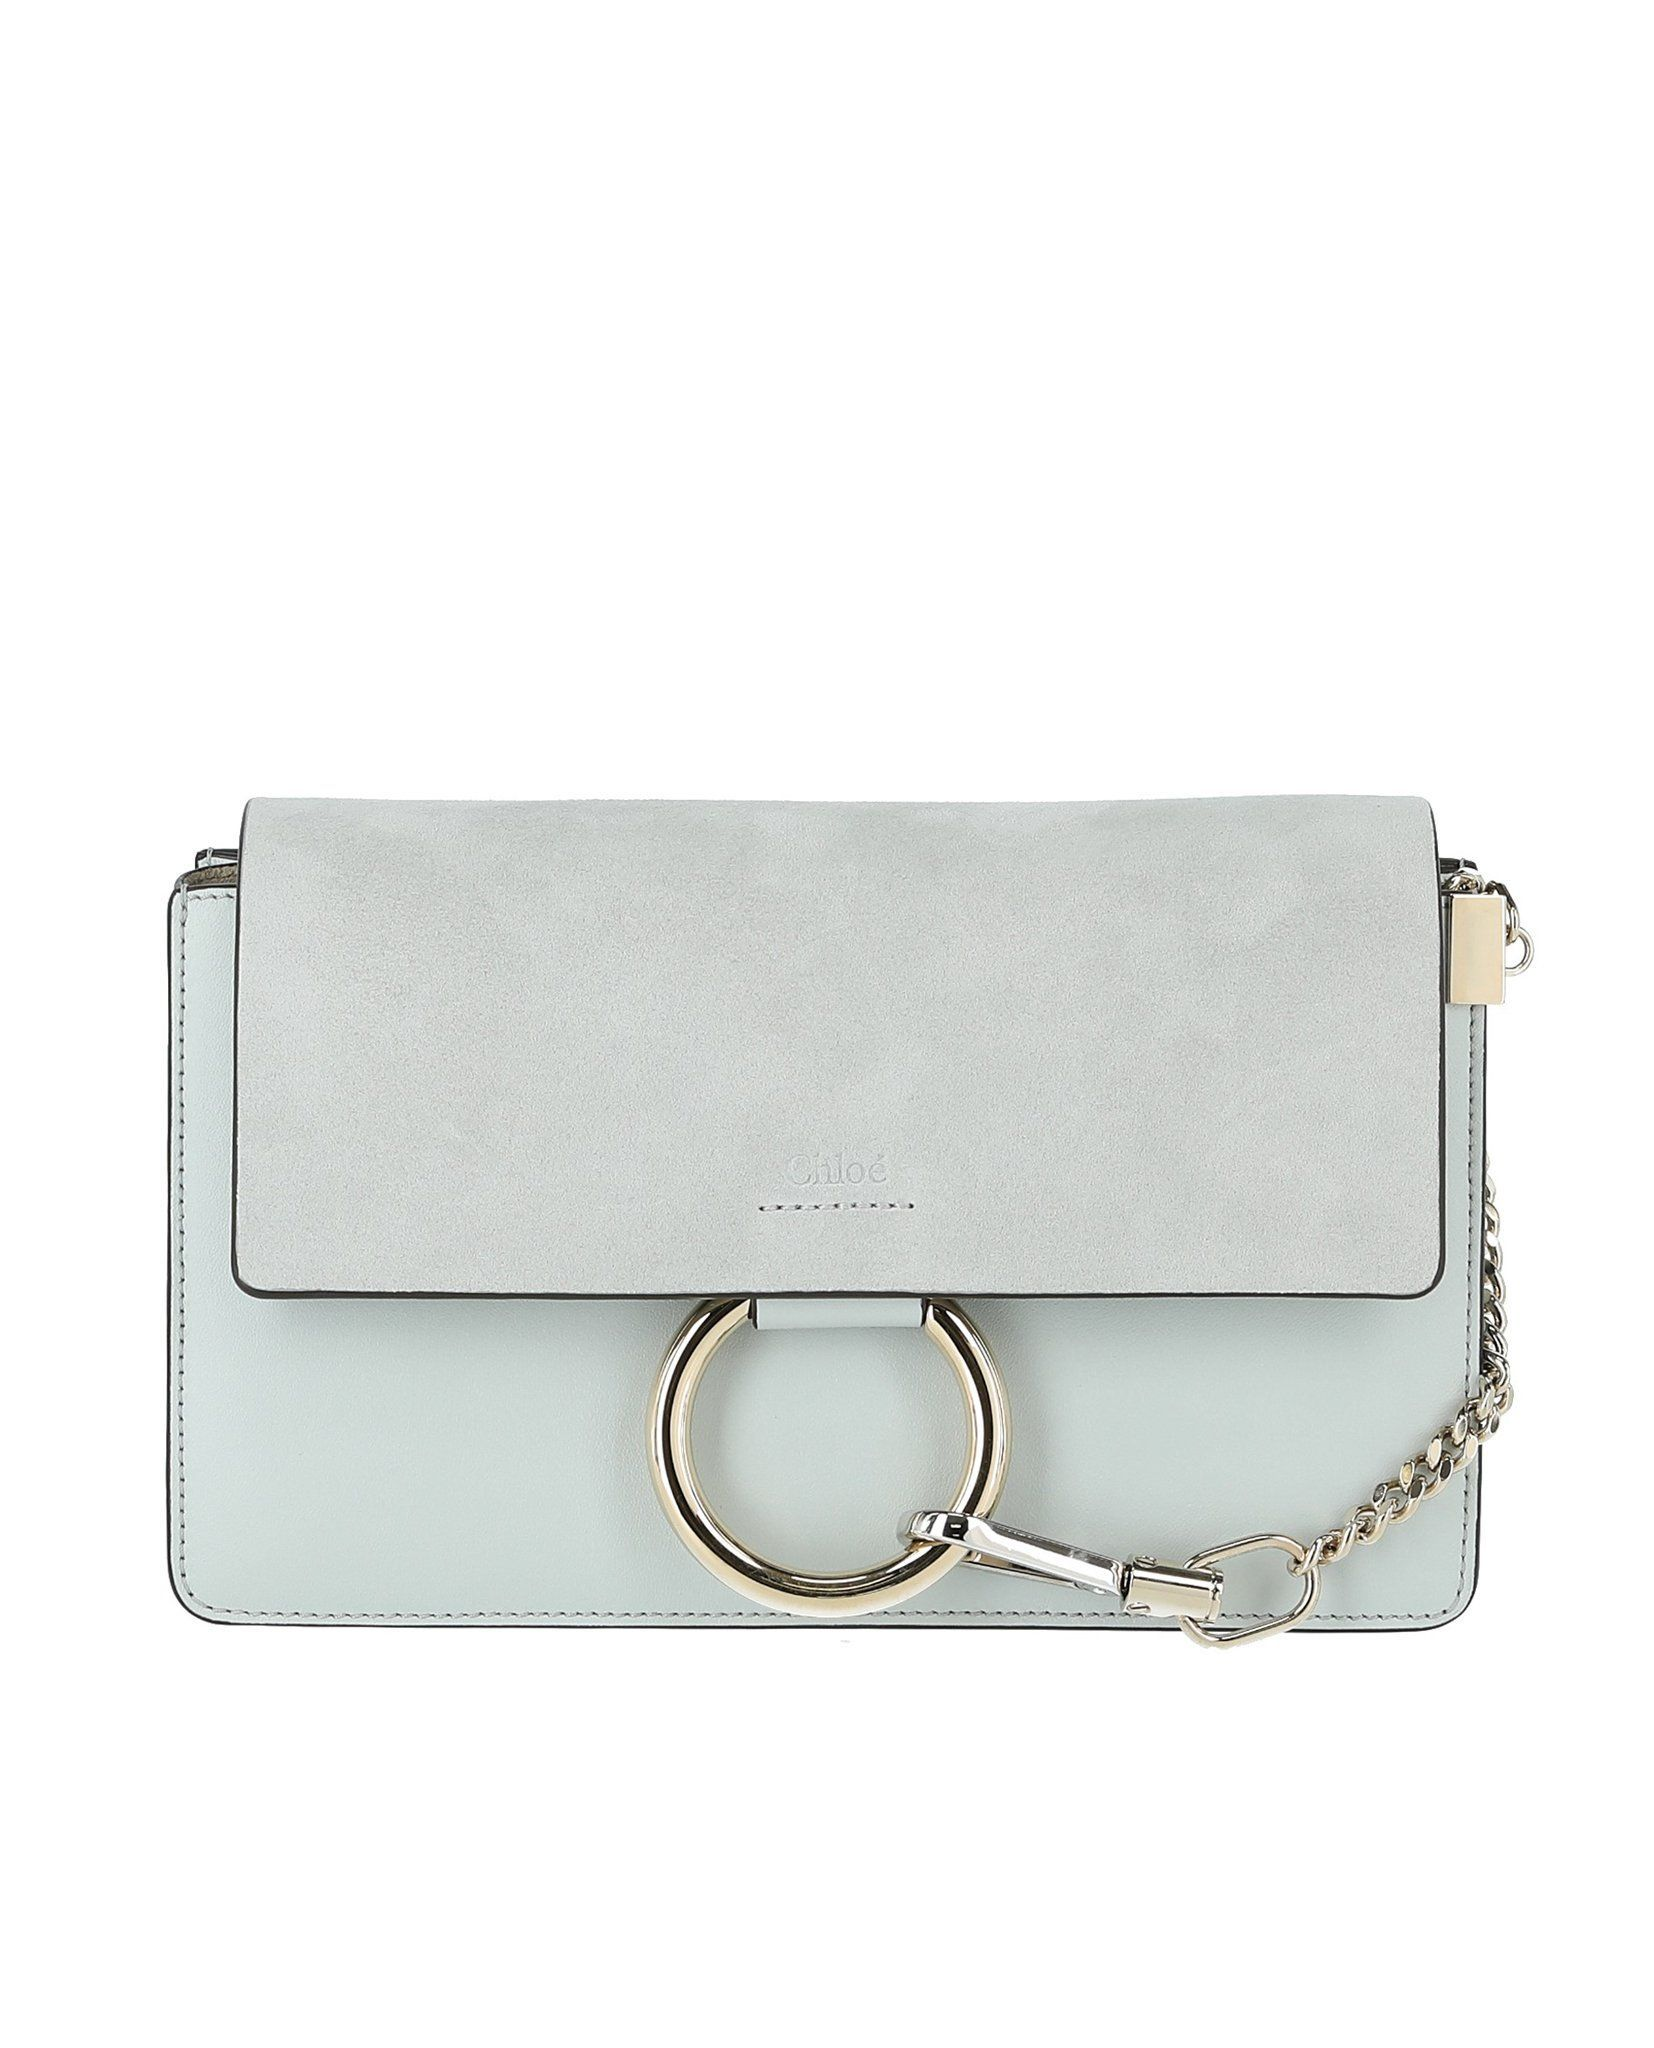 Chloé Faye Small Shoulder Bag  2baa0946e